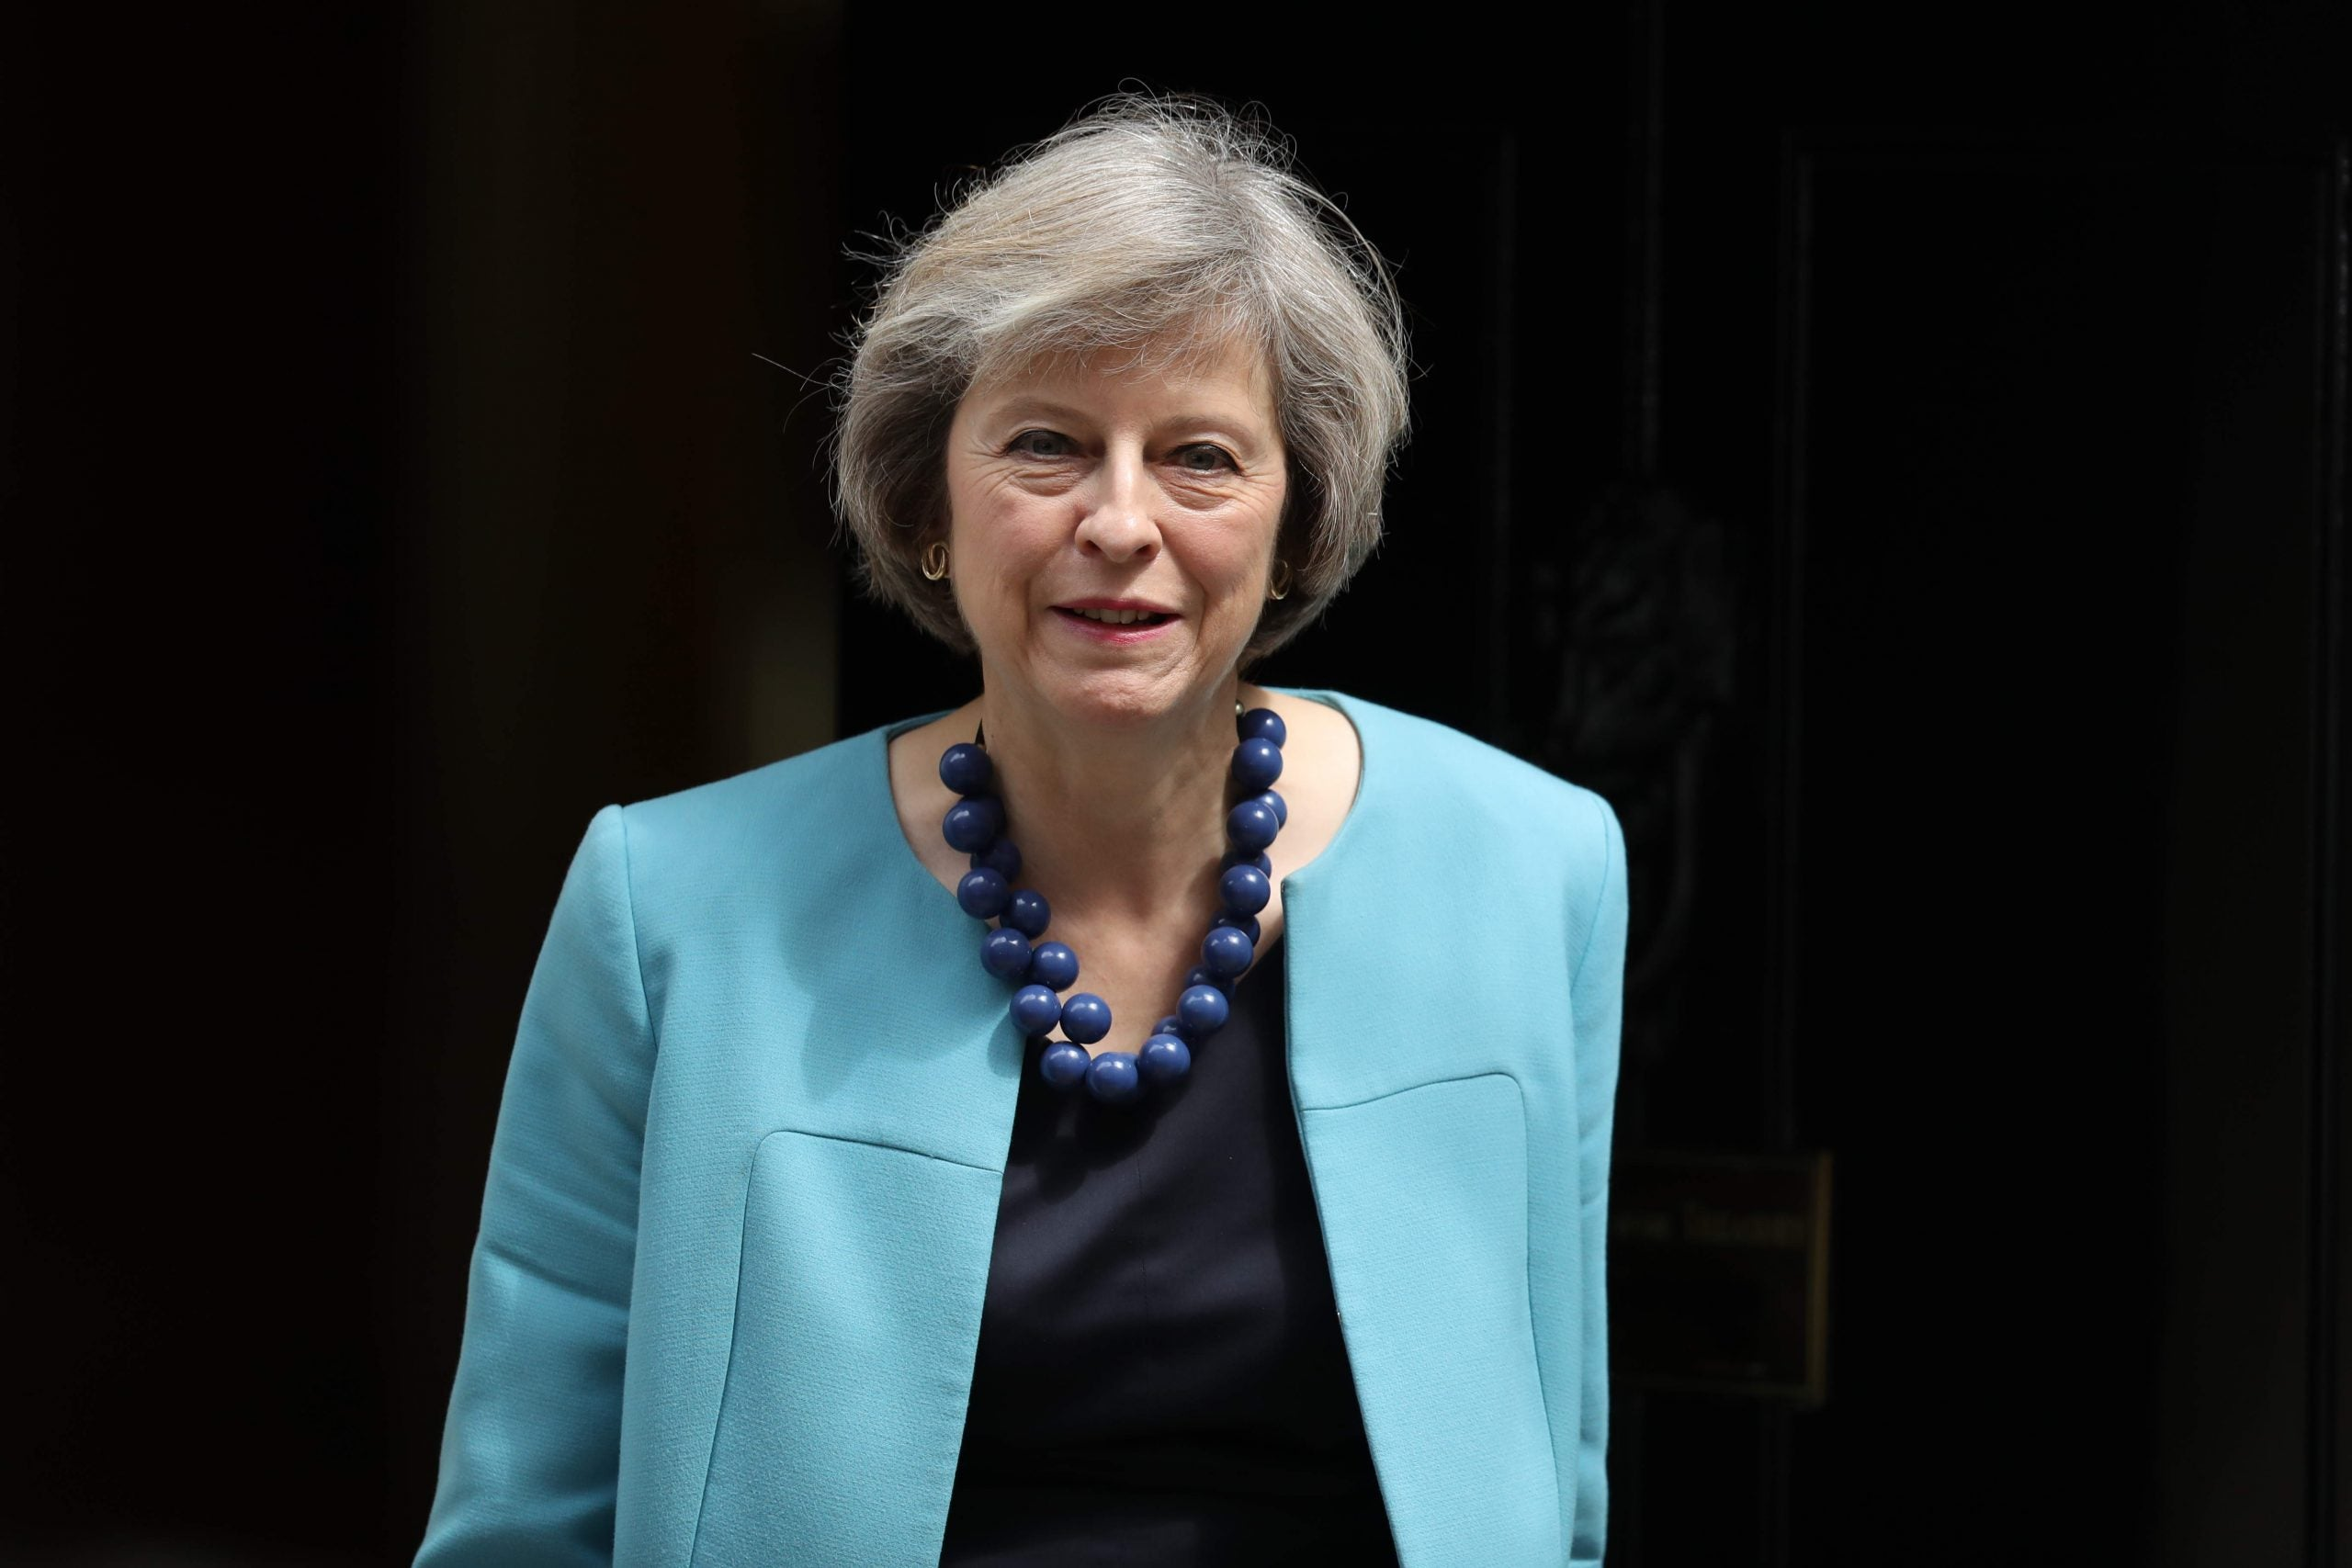 The junior doctors' dispute hasn't gone away – Theresa May is in for a headache